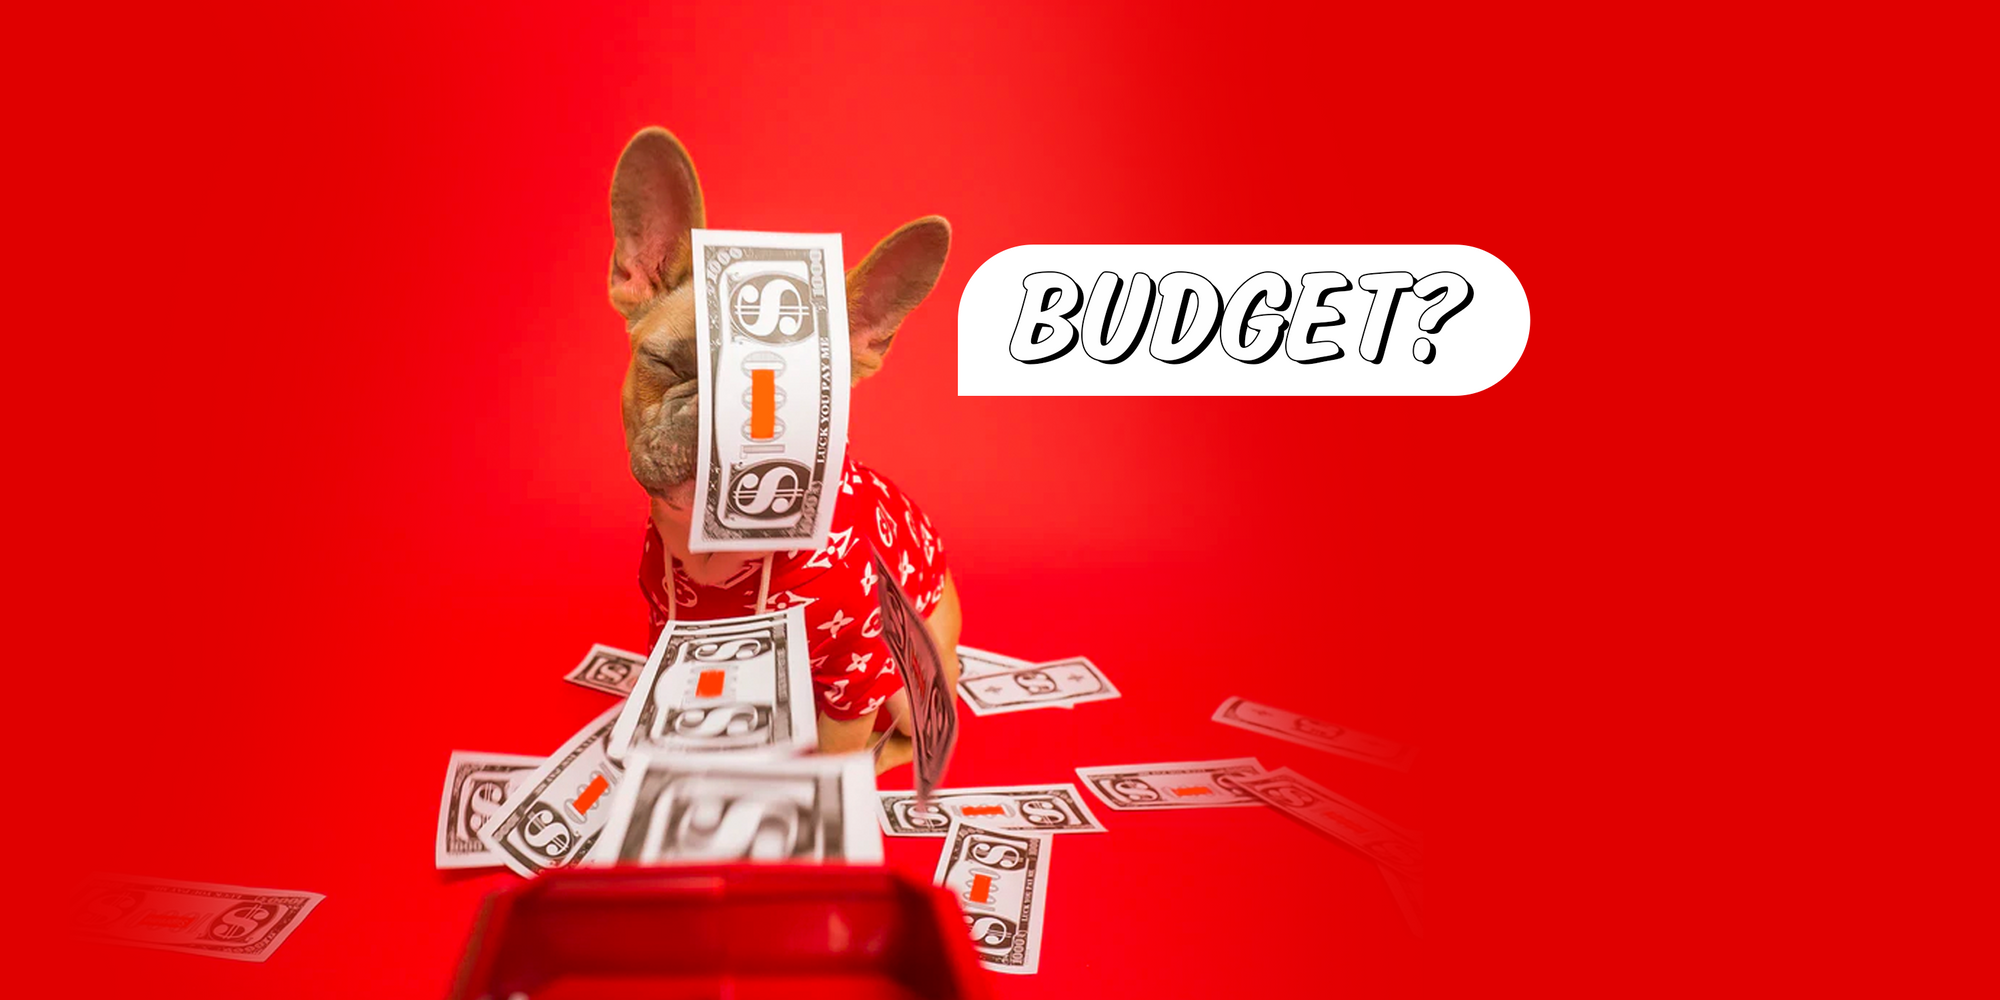 5 things you should be budgeting for.